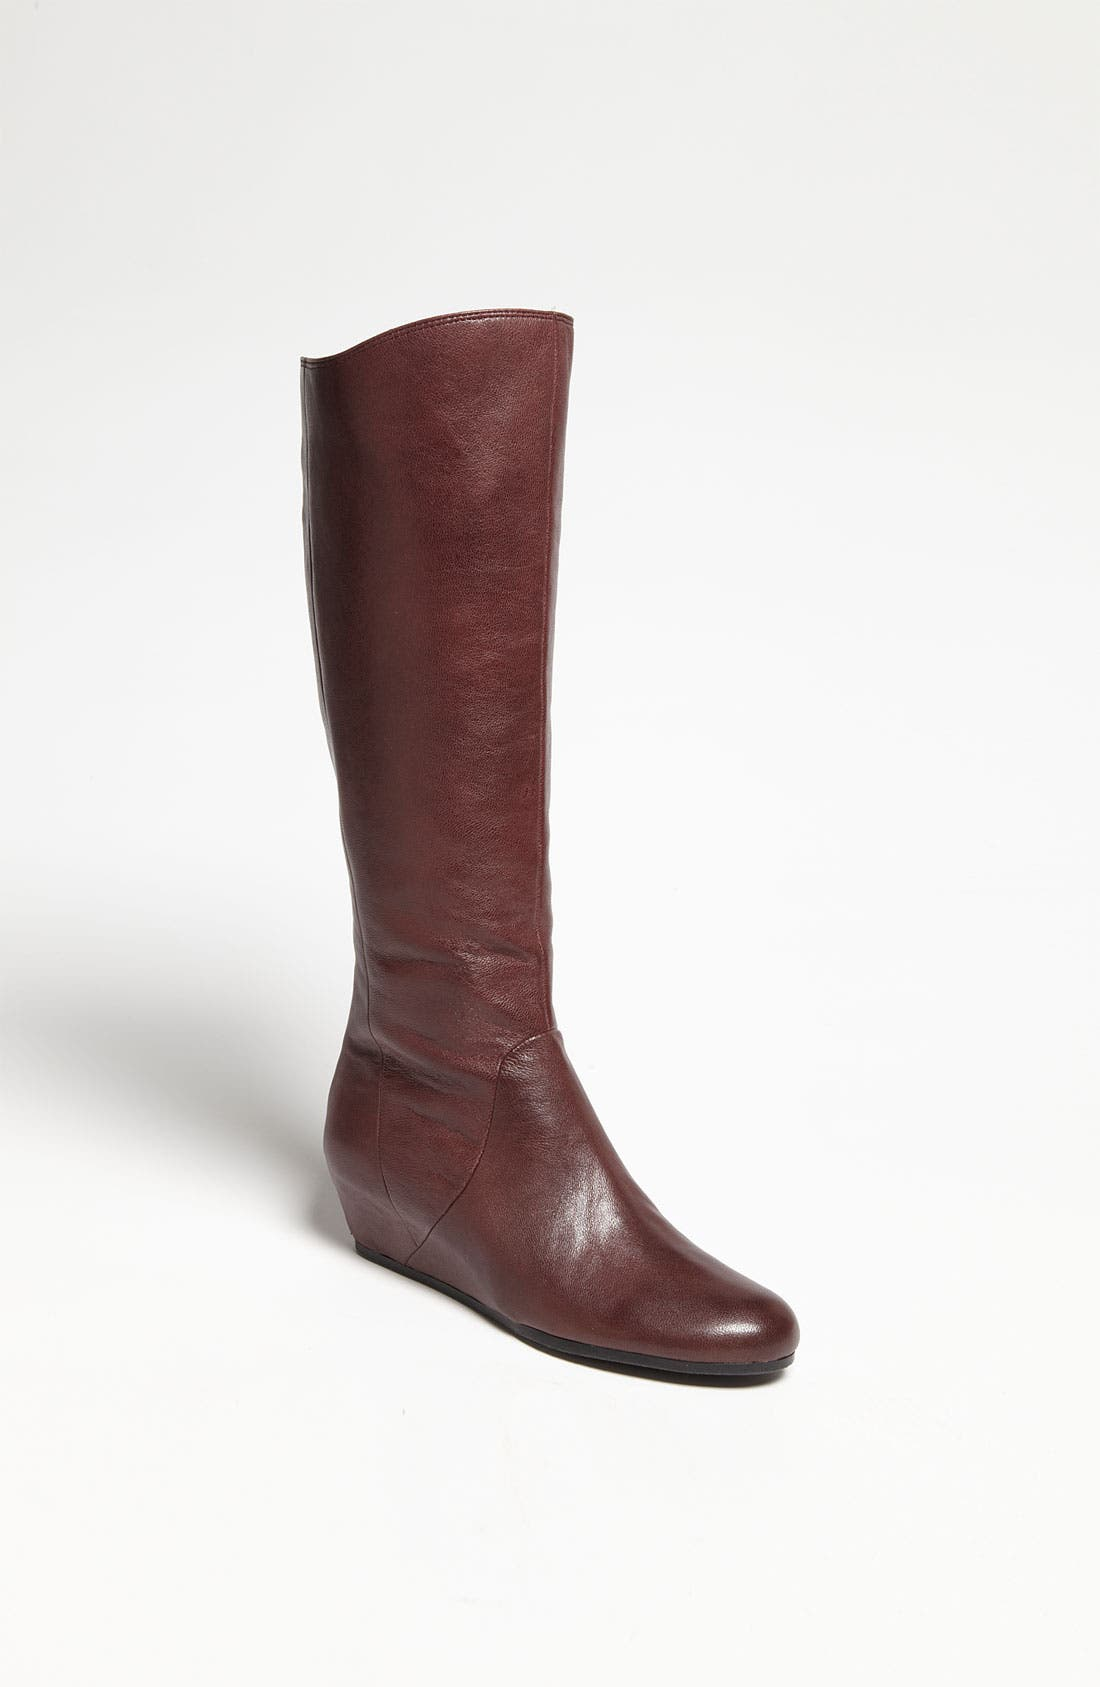 Alternate Image 1 Selected - BP. 'Runway' Boot